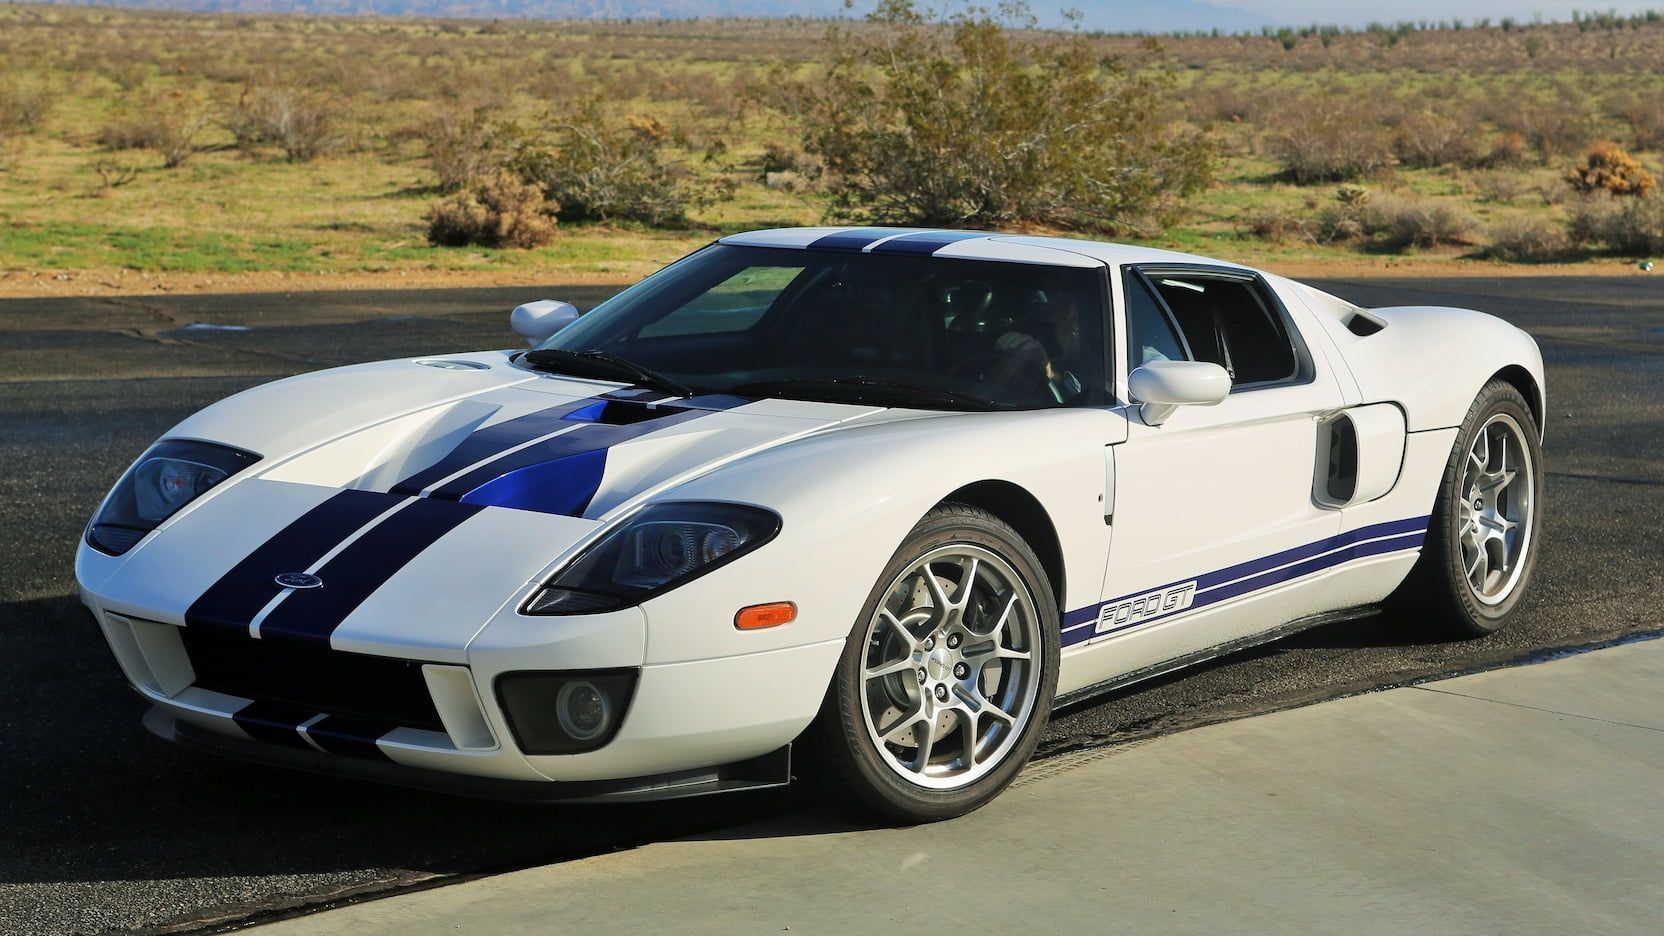 Ford Gt40 2005 Images 2005 Ford Gt40 Related Keywords Suggestions 2005 Ford Gt40 Long Ford Gt40 Ford Gt40